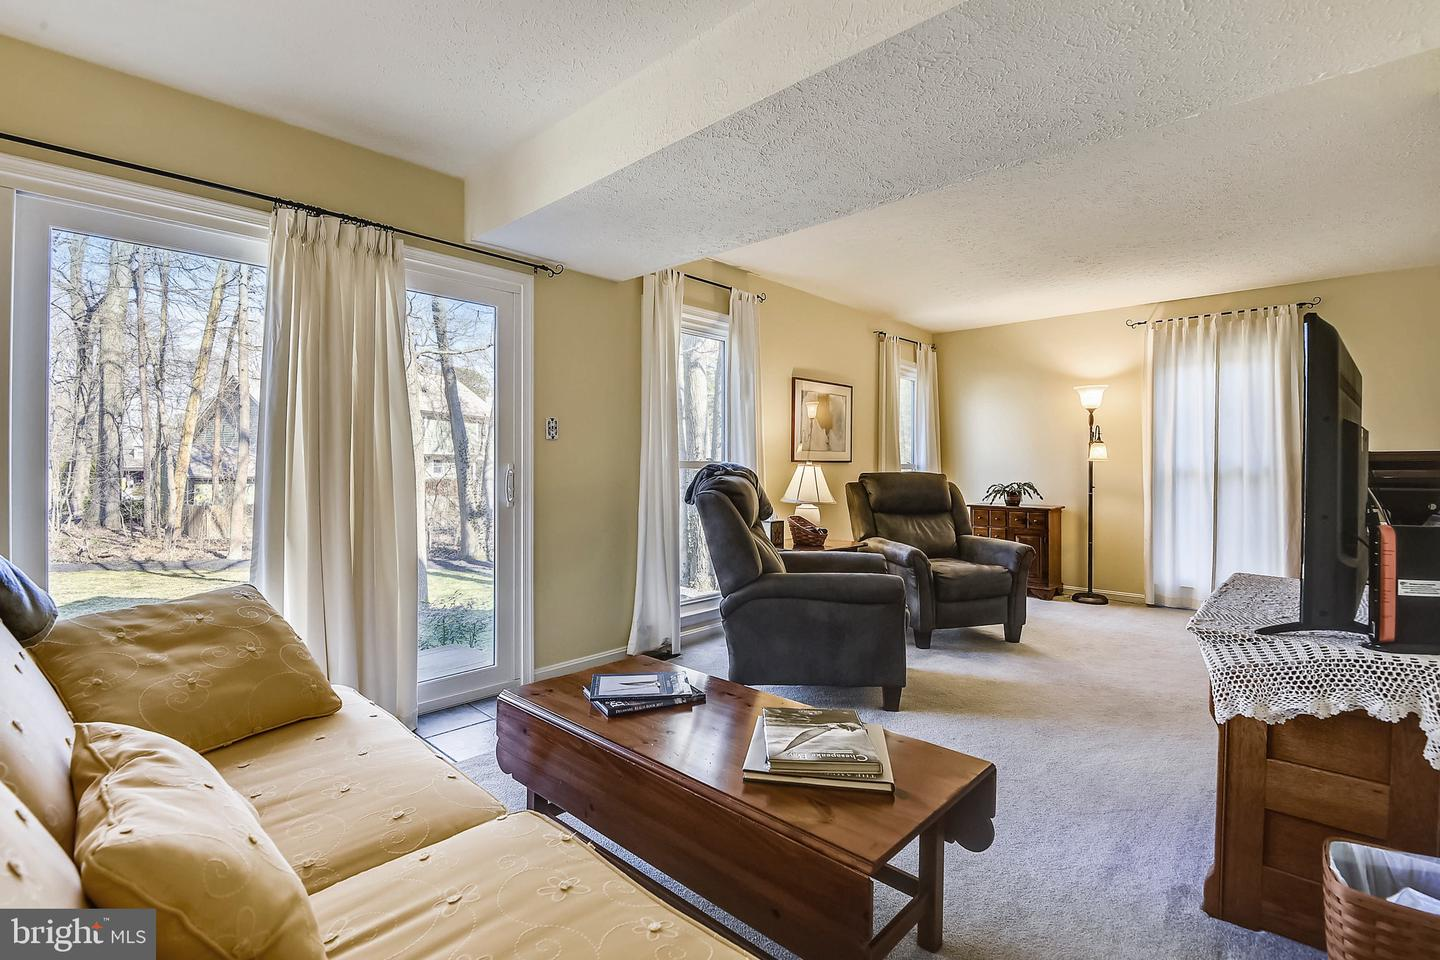 Additional photo for property listing at 134 Wild Oak Rd Severna Park, Maryland 21146 United States